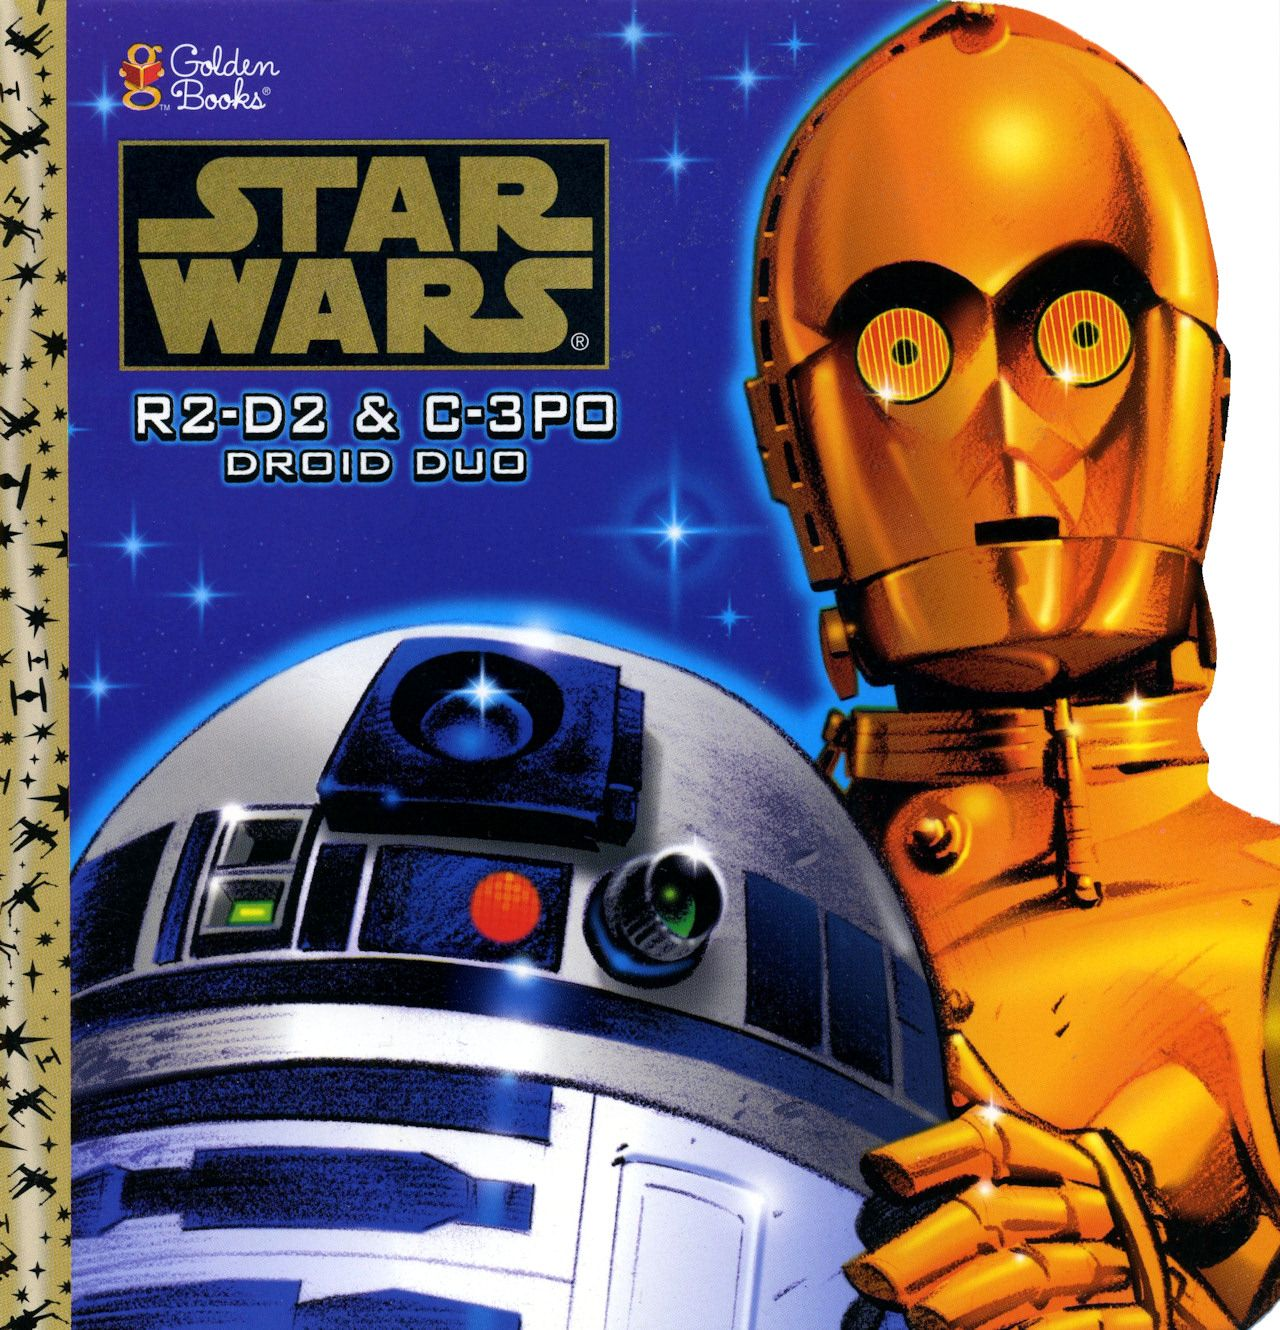 Coleccion Libros Star Wars Star Wars R2 D2 And C 3po Droid Duo Golden Books 1997